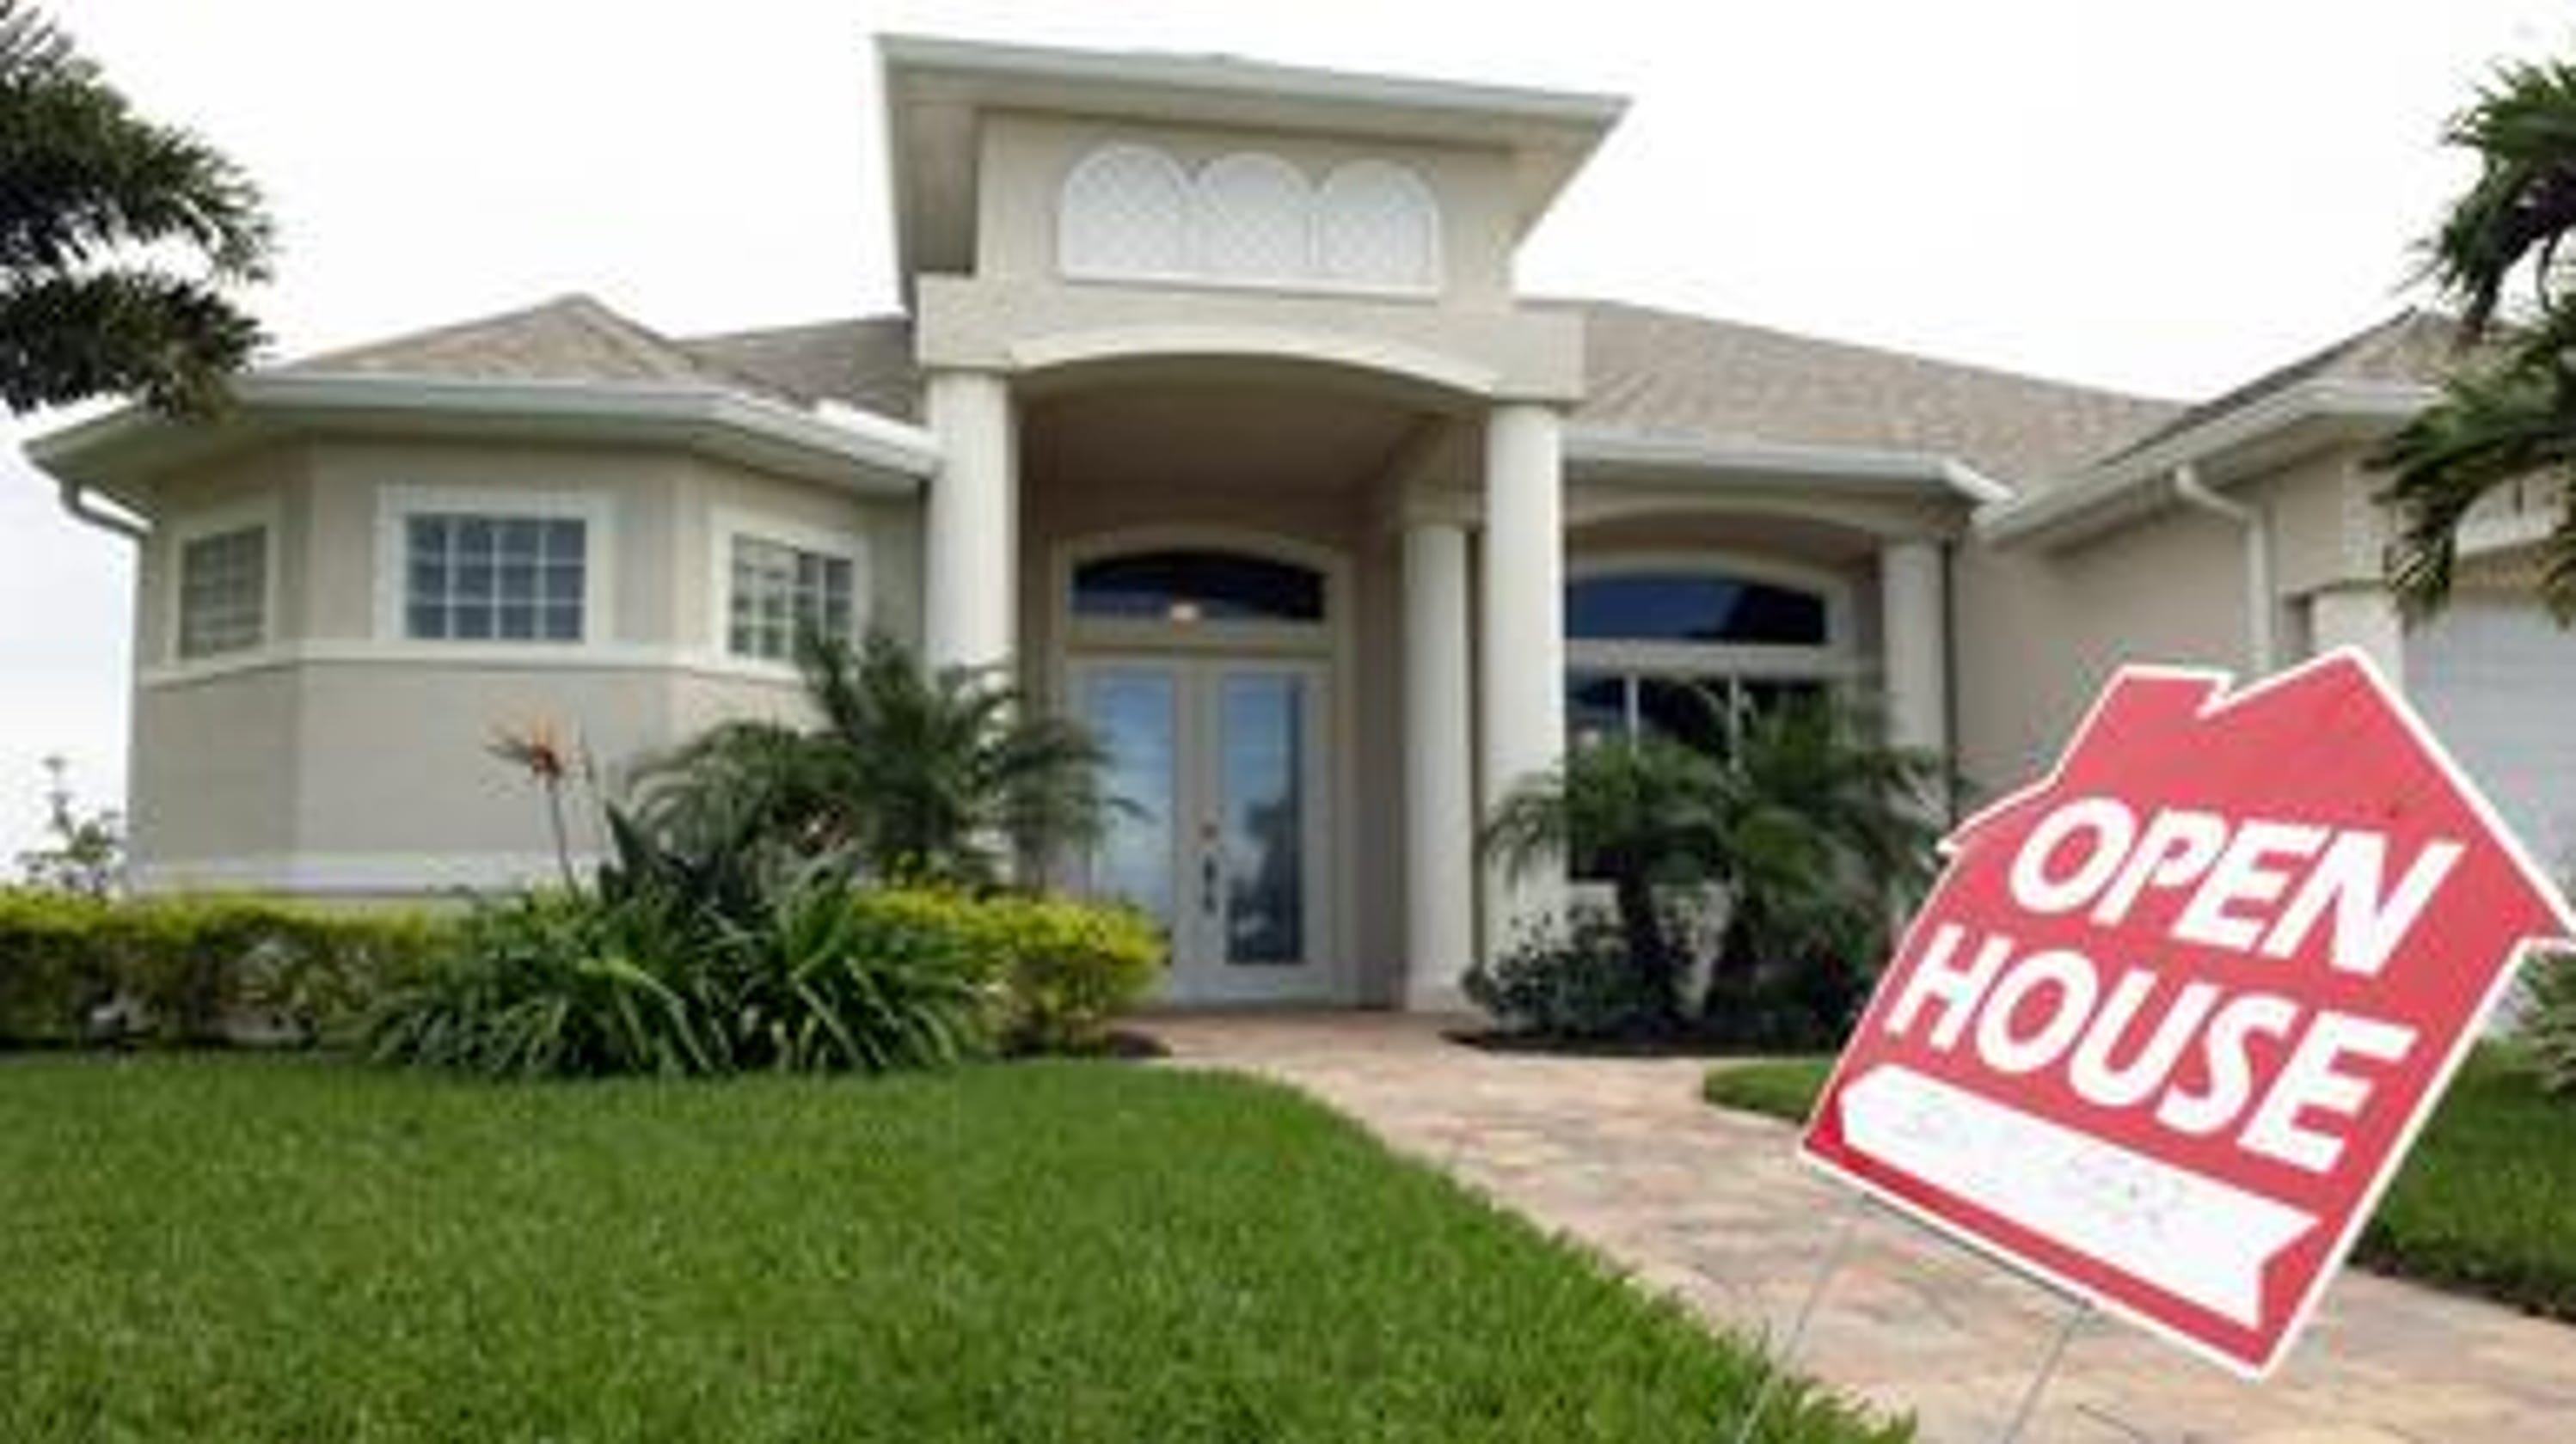 Home prices continue to escalate in Brevard County, though